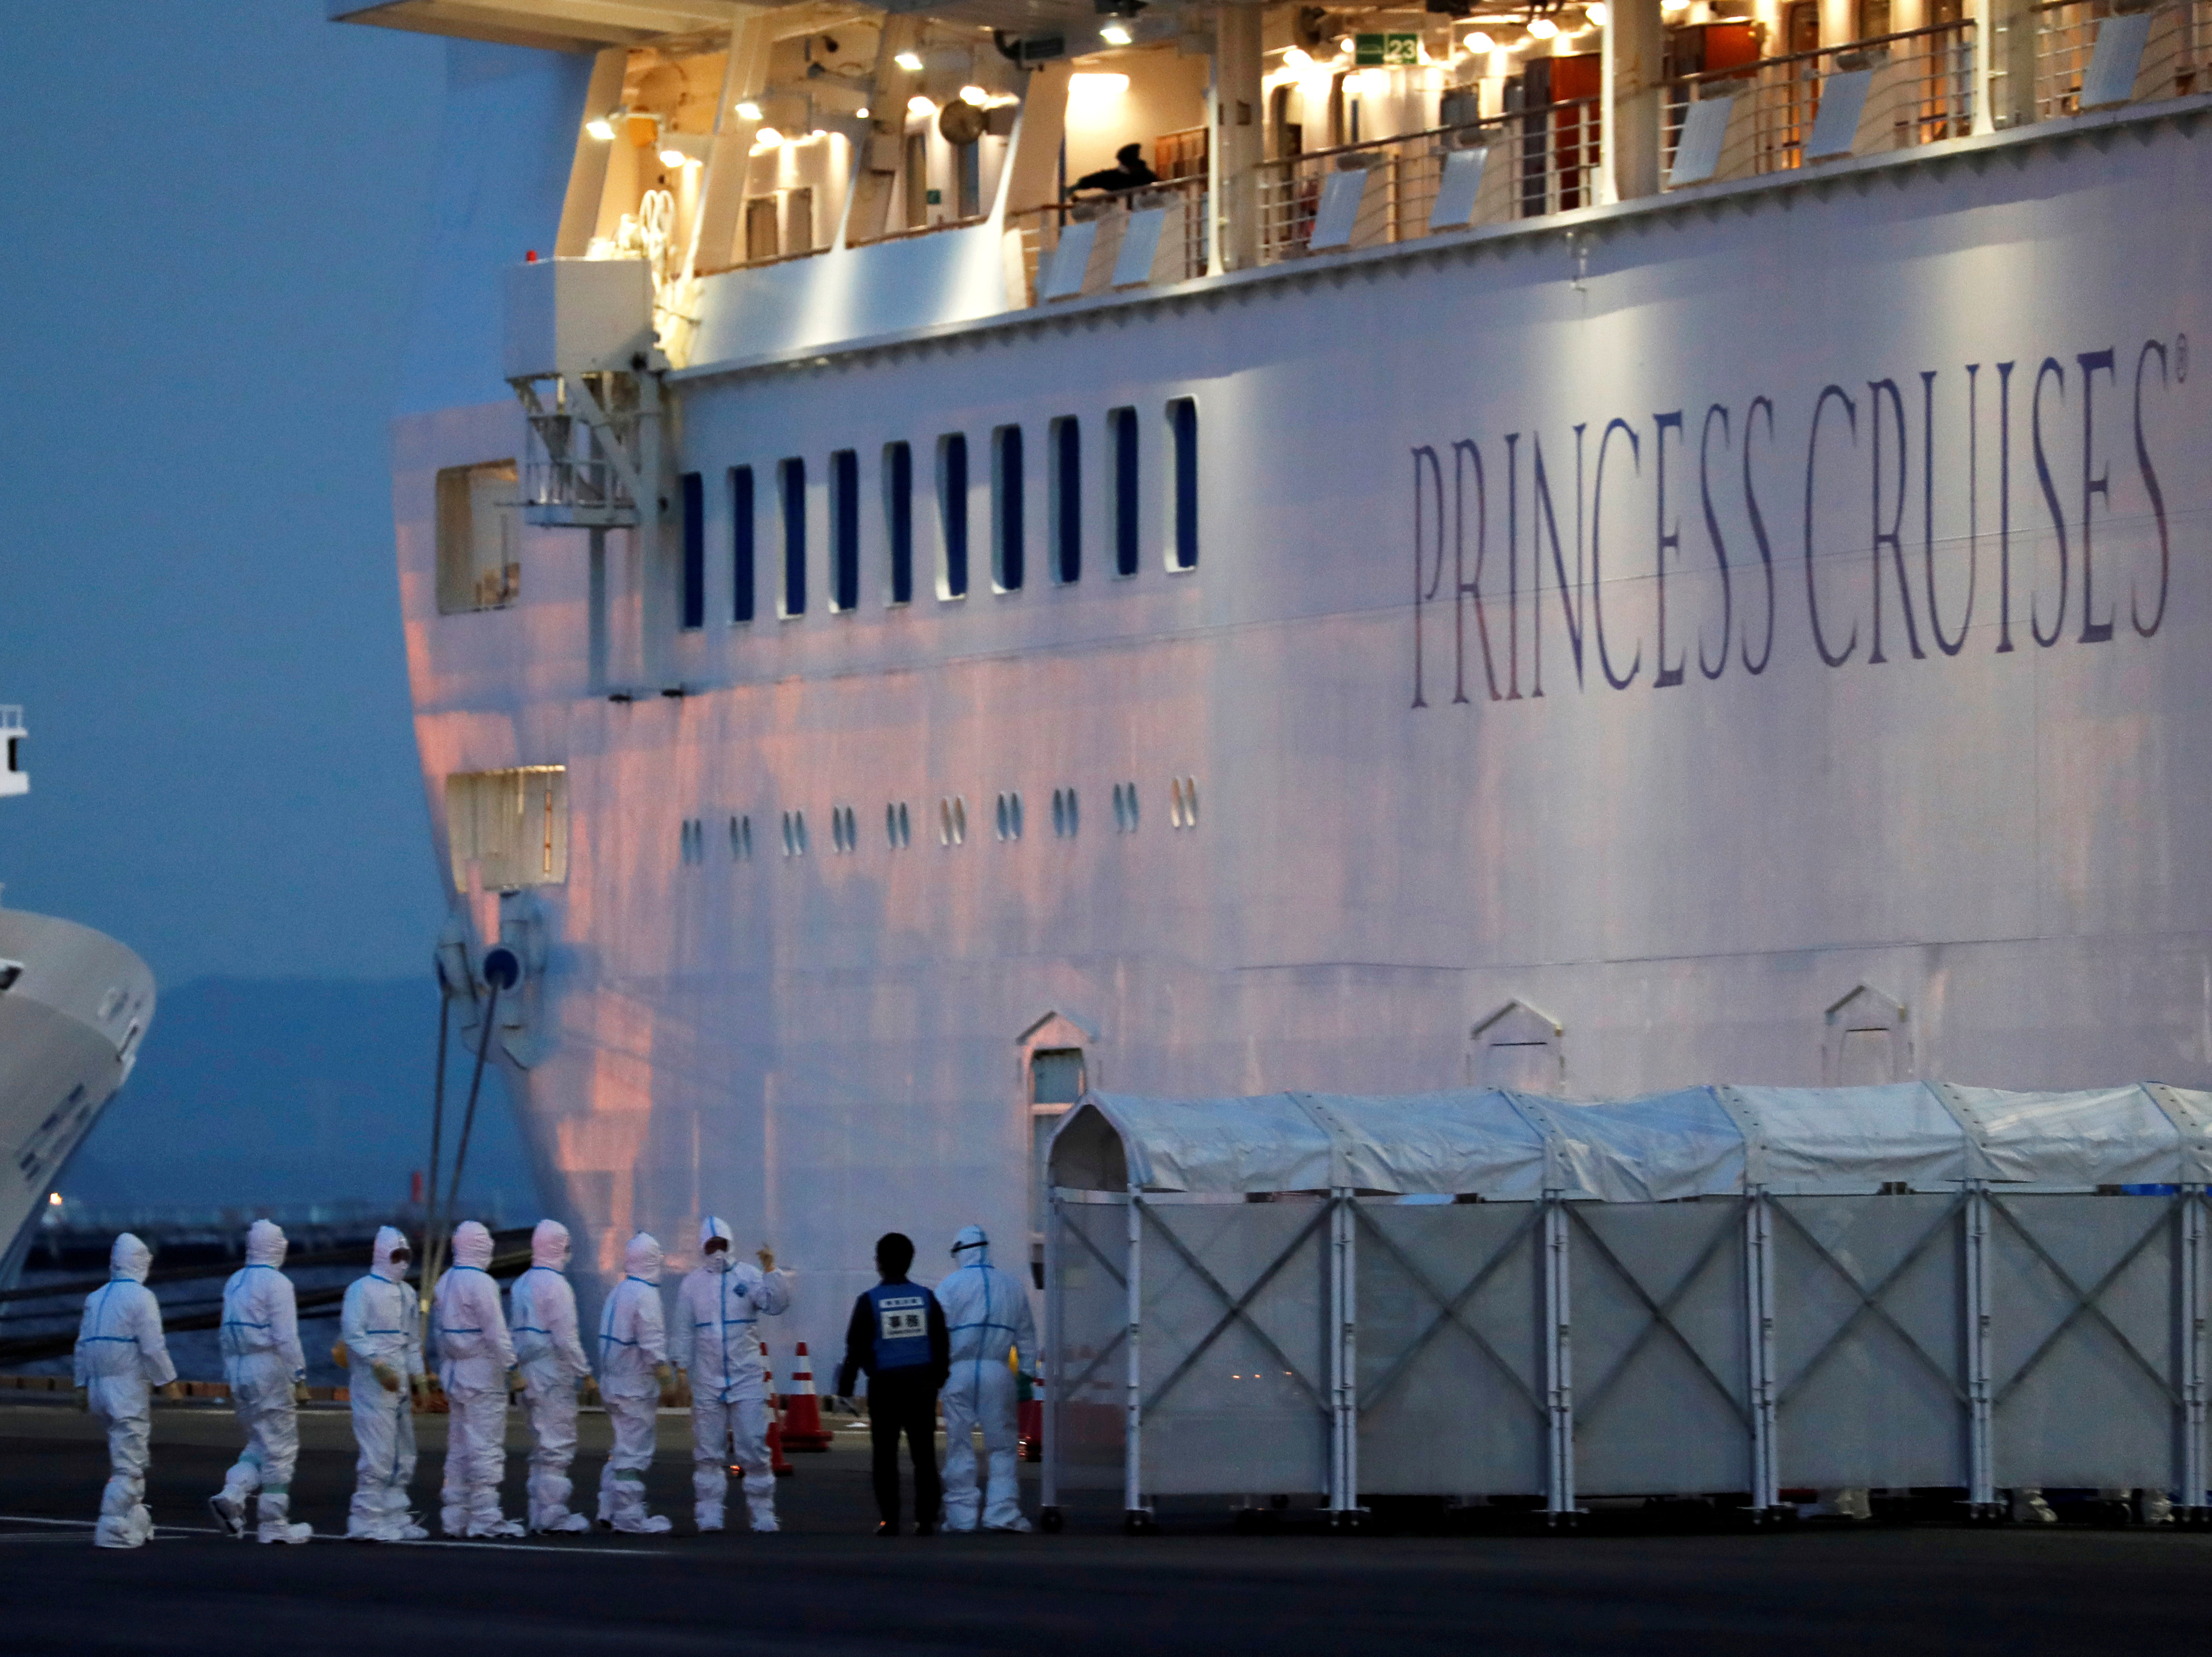 On Cruise Ship Quarantined In Japan, New Cases Could Reset The Isolation Clock